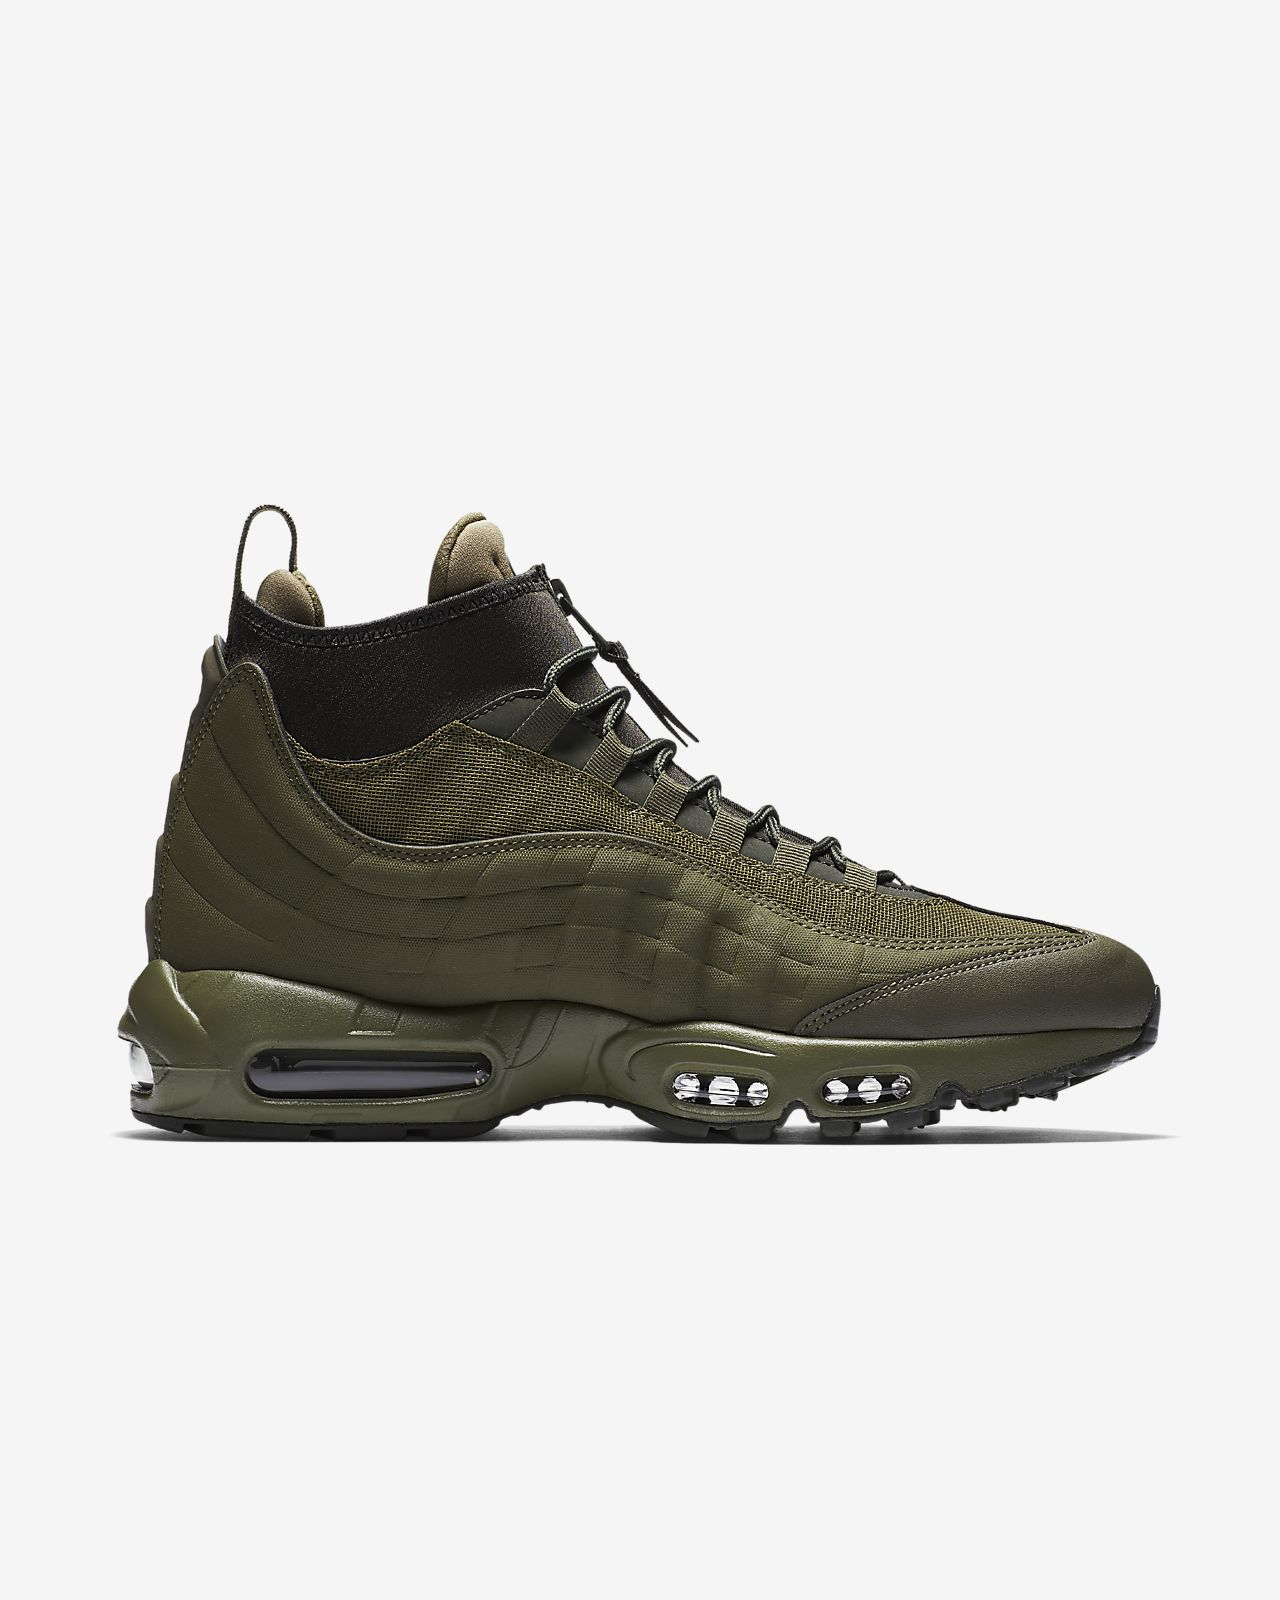 nike air max 95 sneaker boot black size 13